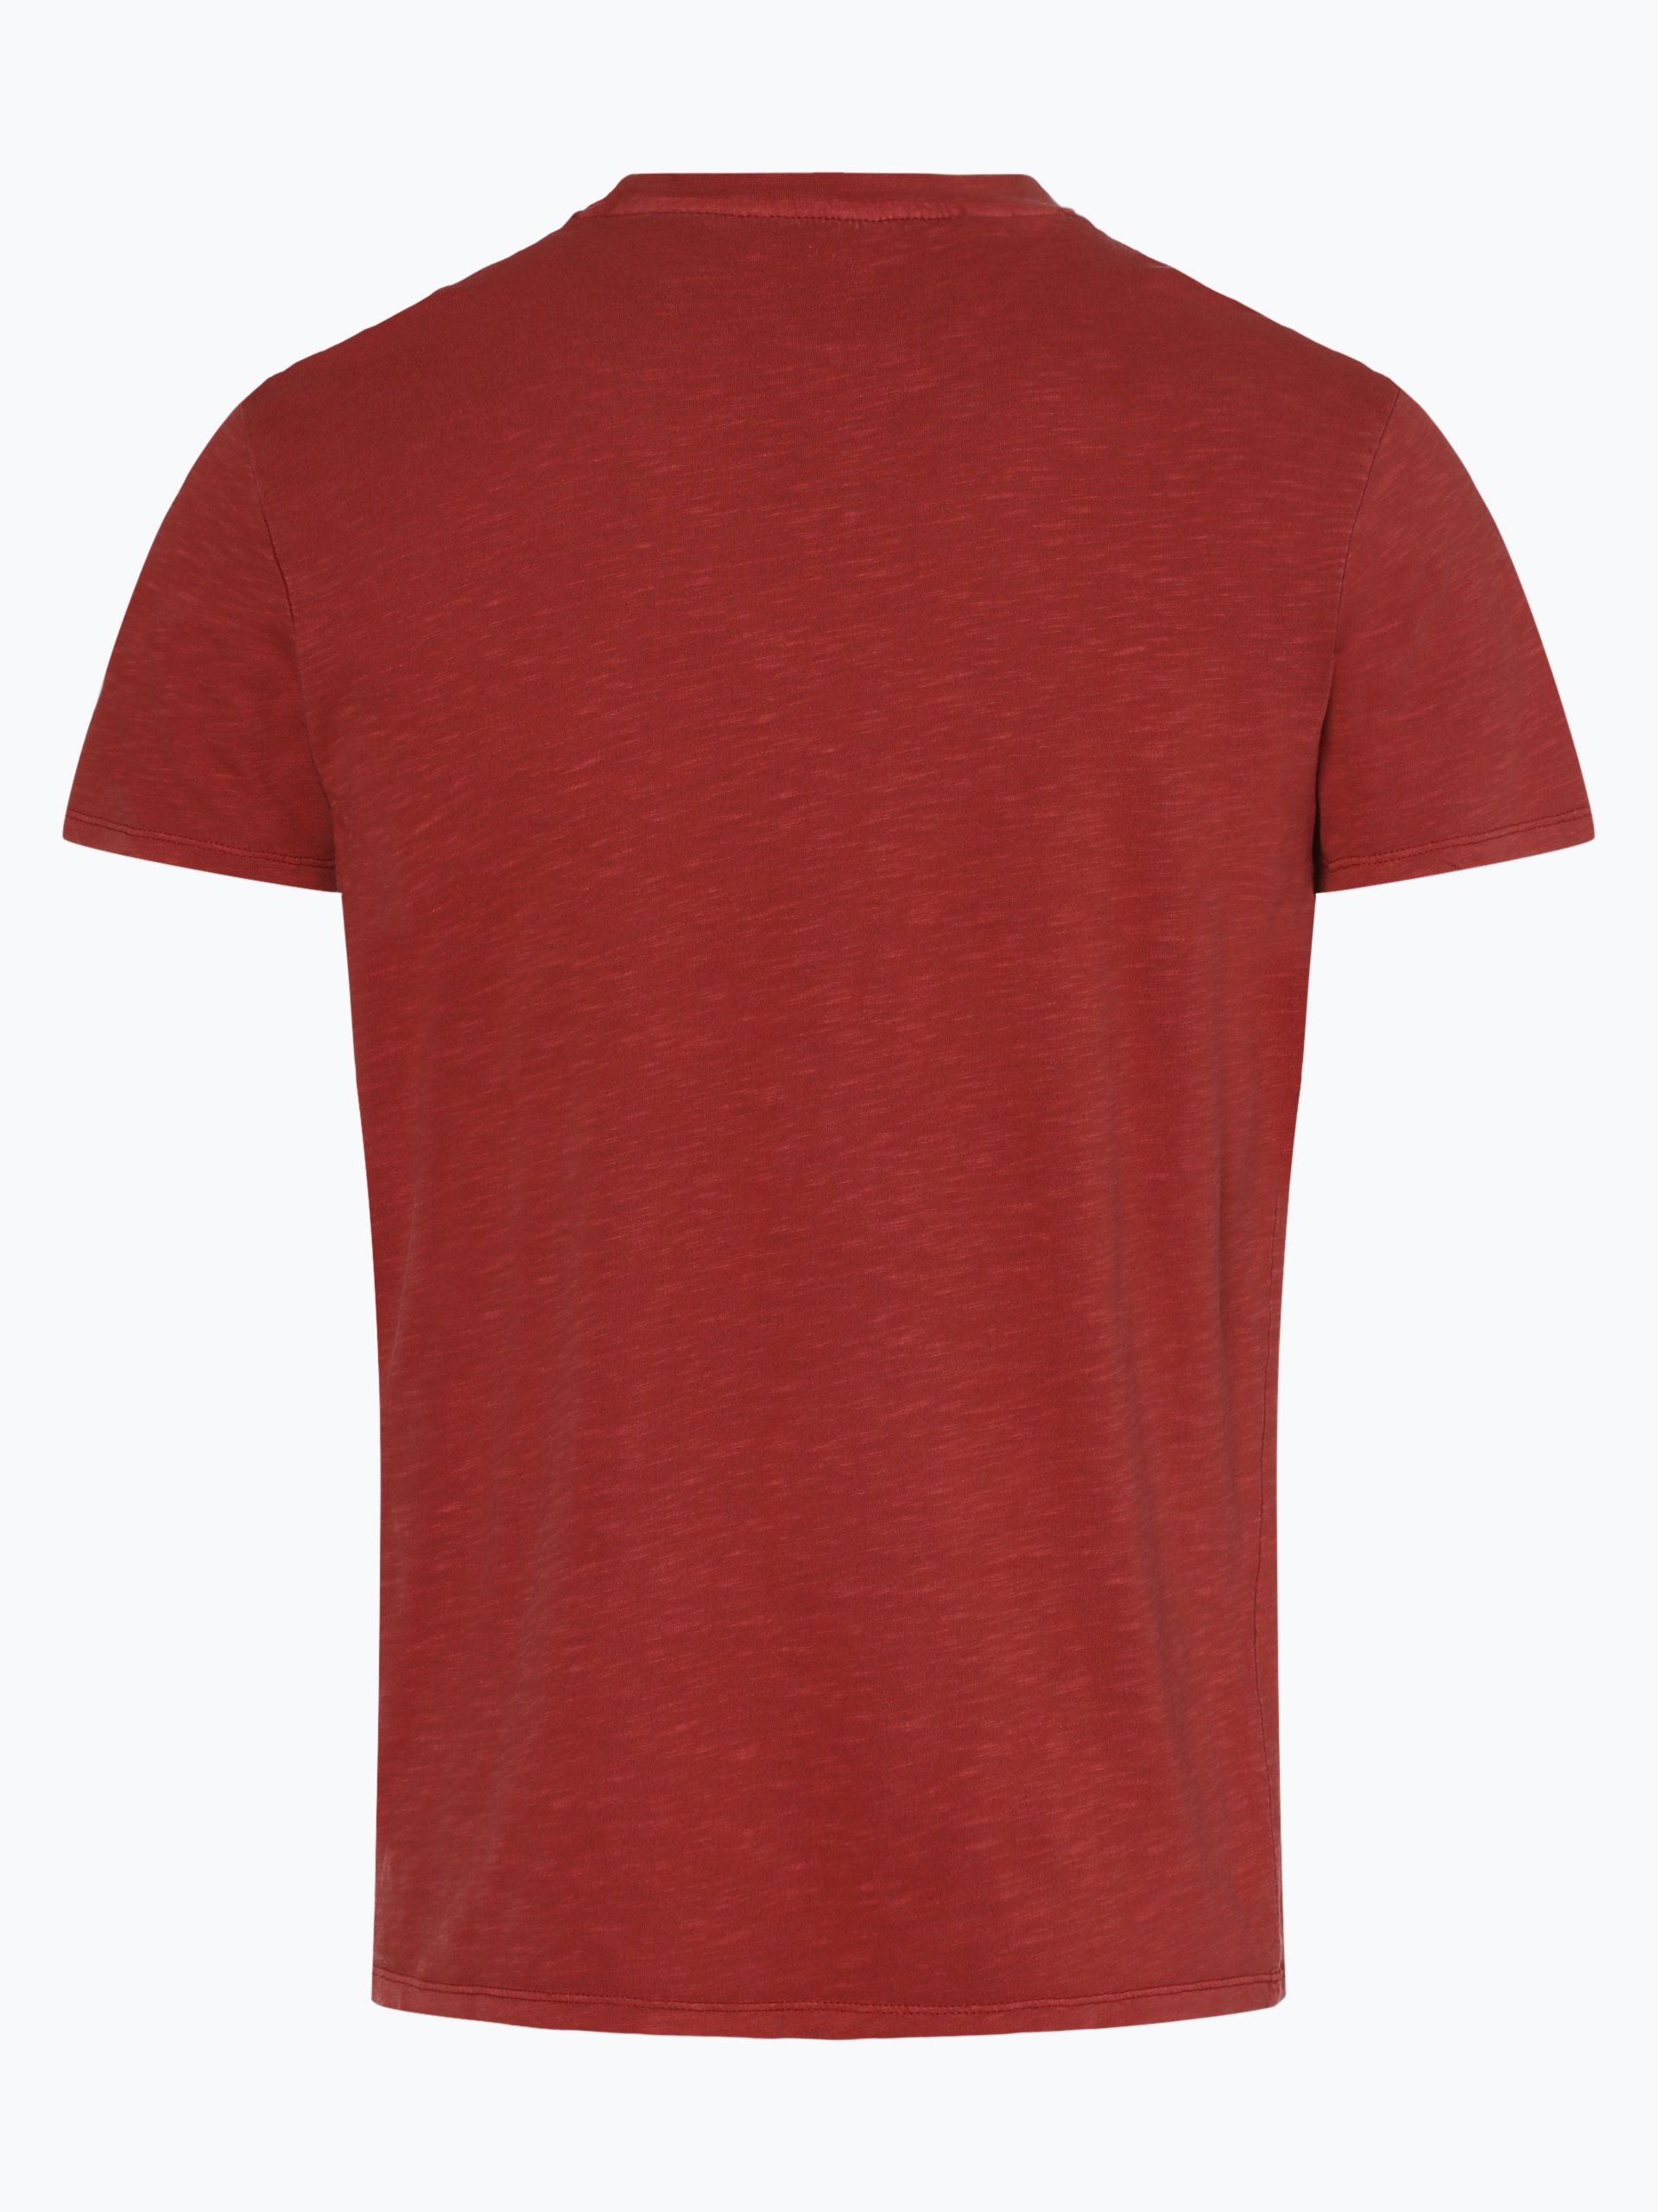 Selected Herren T-Shirt - Slhben